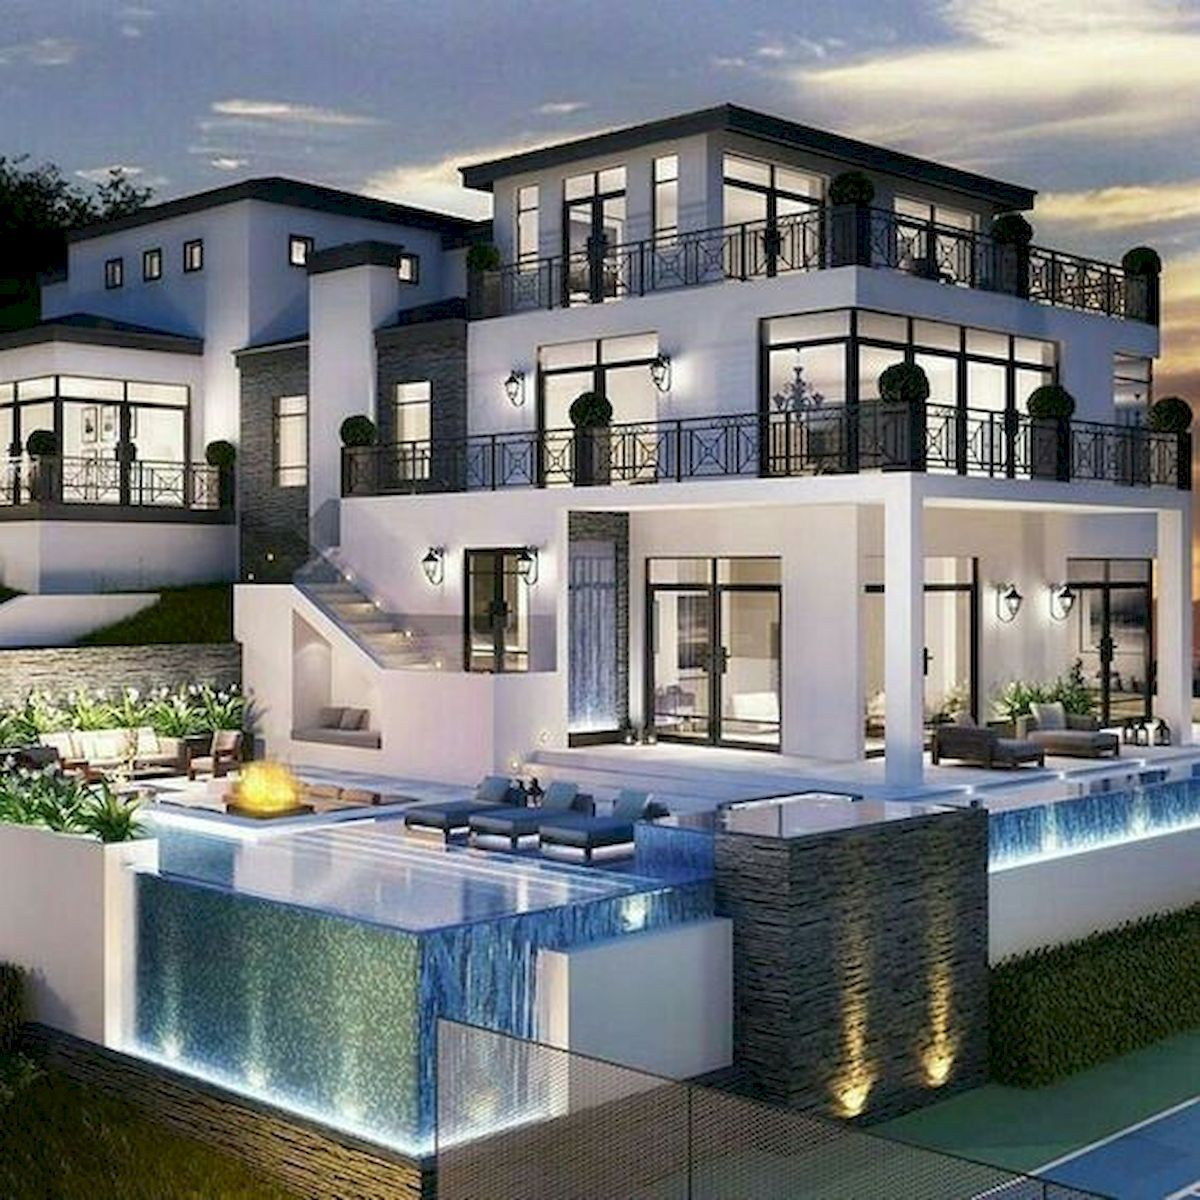 40 Stunning Mansions Luxury Exterior Design Ideas Livingmarch Com Bookshelfdecor Des In 2020 Luxury Exterior Design Luxury Exterior Luxury Homes Dream Houses